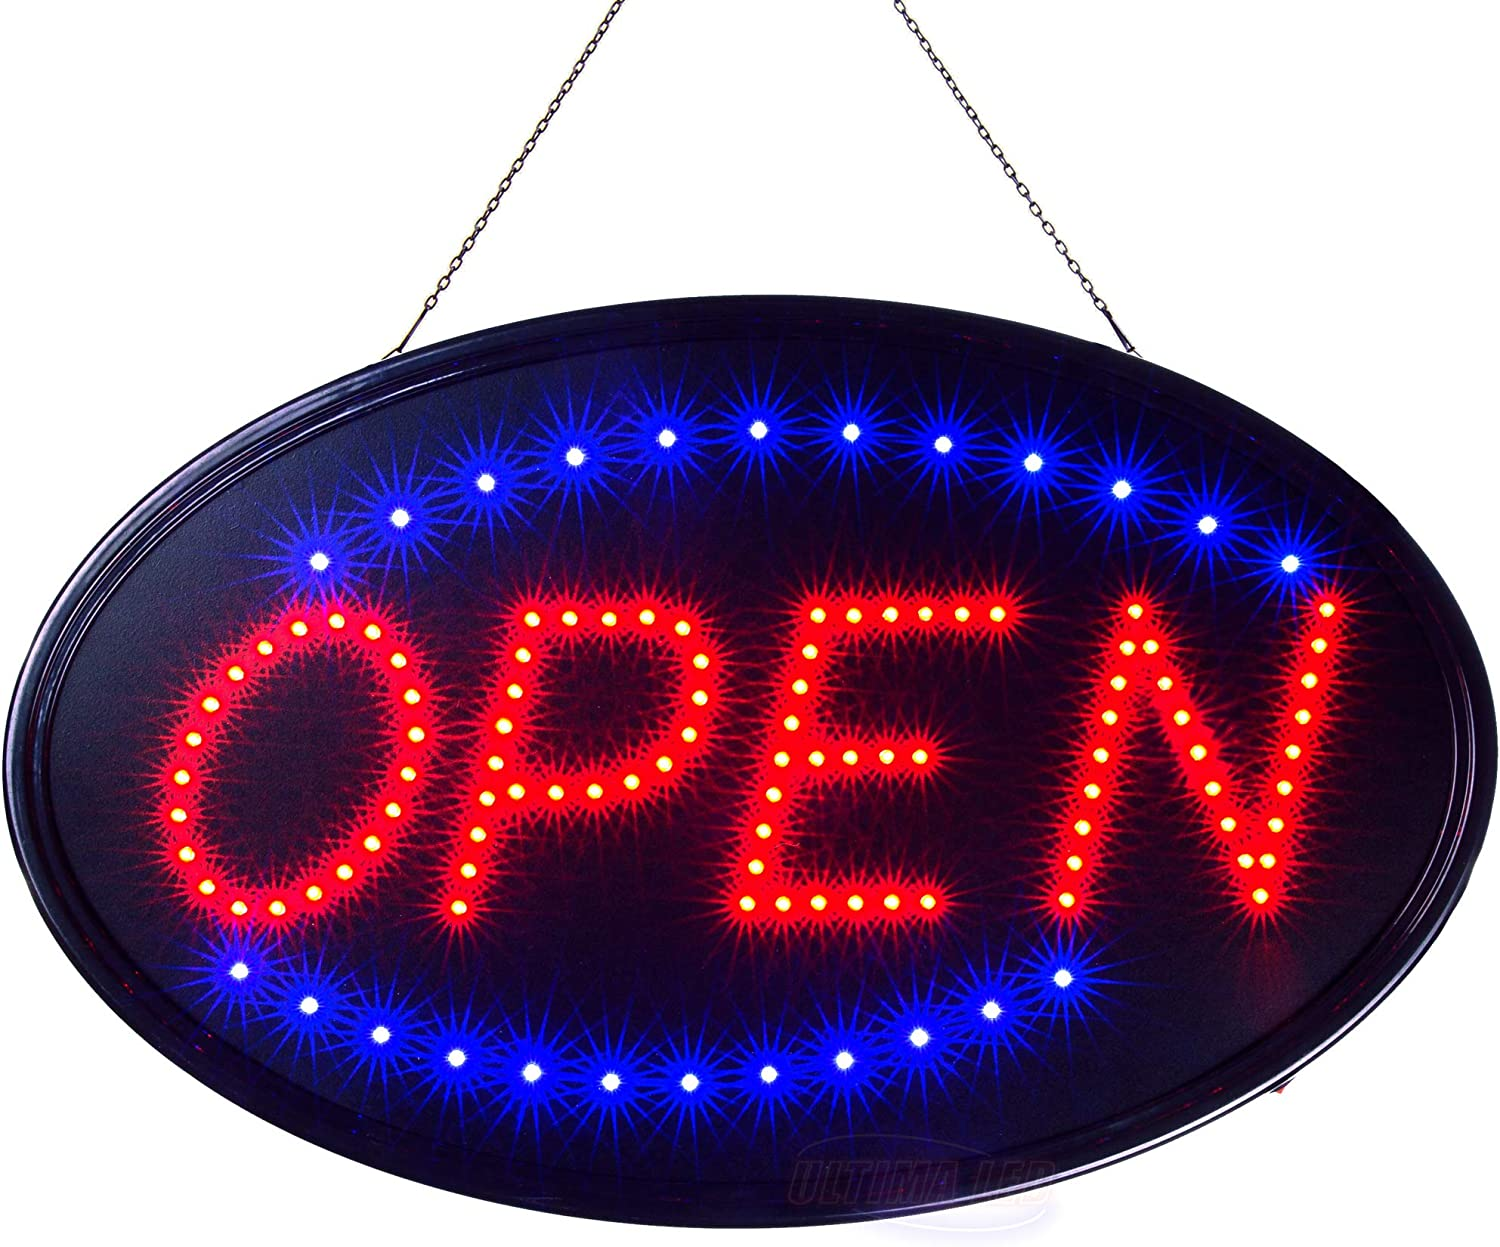 Ultima LED Neon Open Sign for Business: Jumbo Lighted Sign Open with Flashing Mode – Large Indoor Electric Light up Sign for Stores (23 x 14 in) Includes Business Hours and Open & Closed Signs